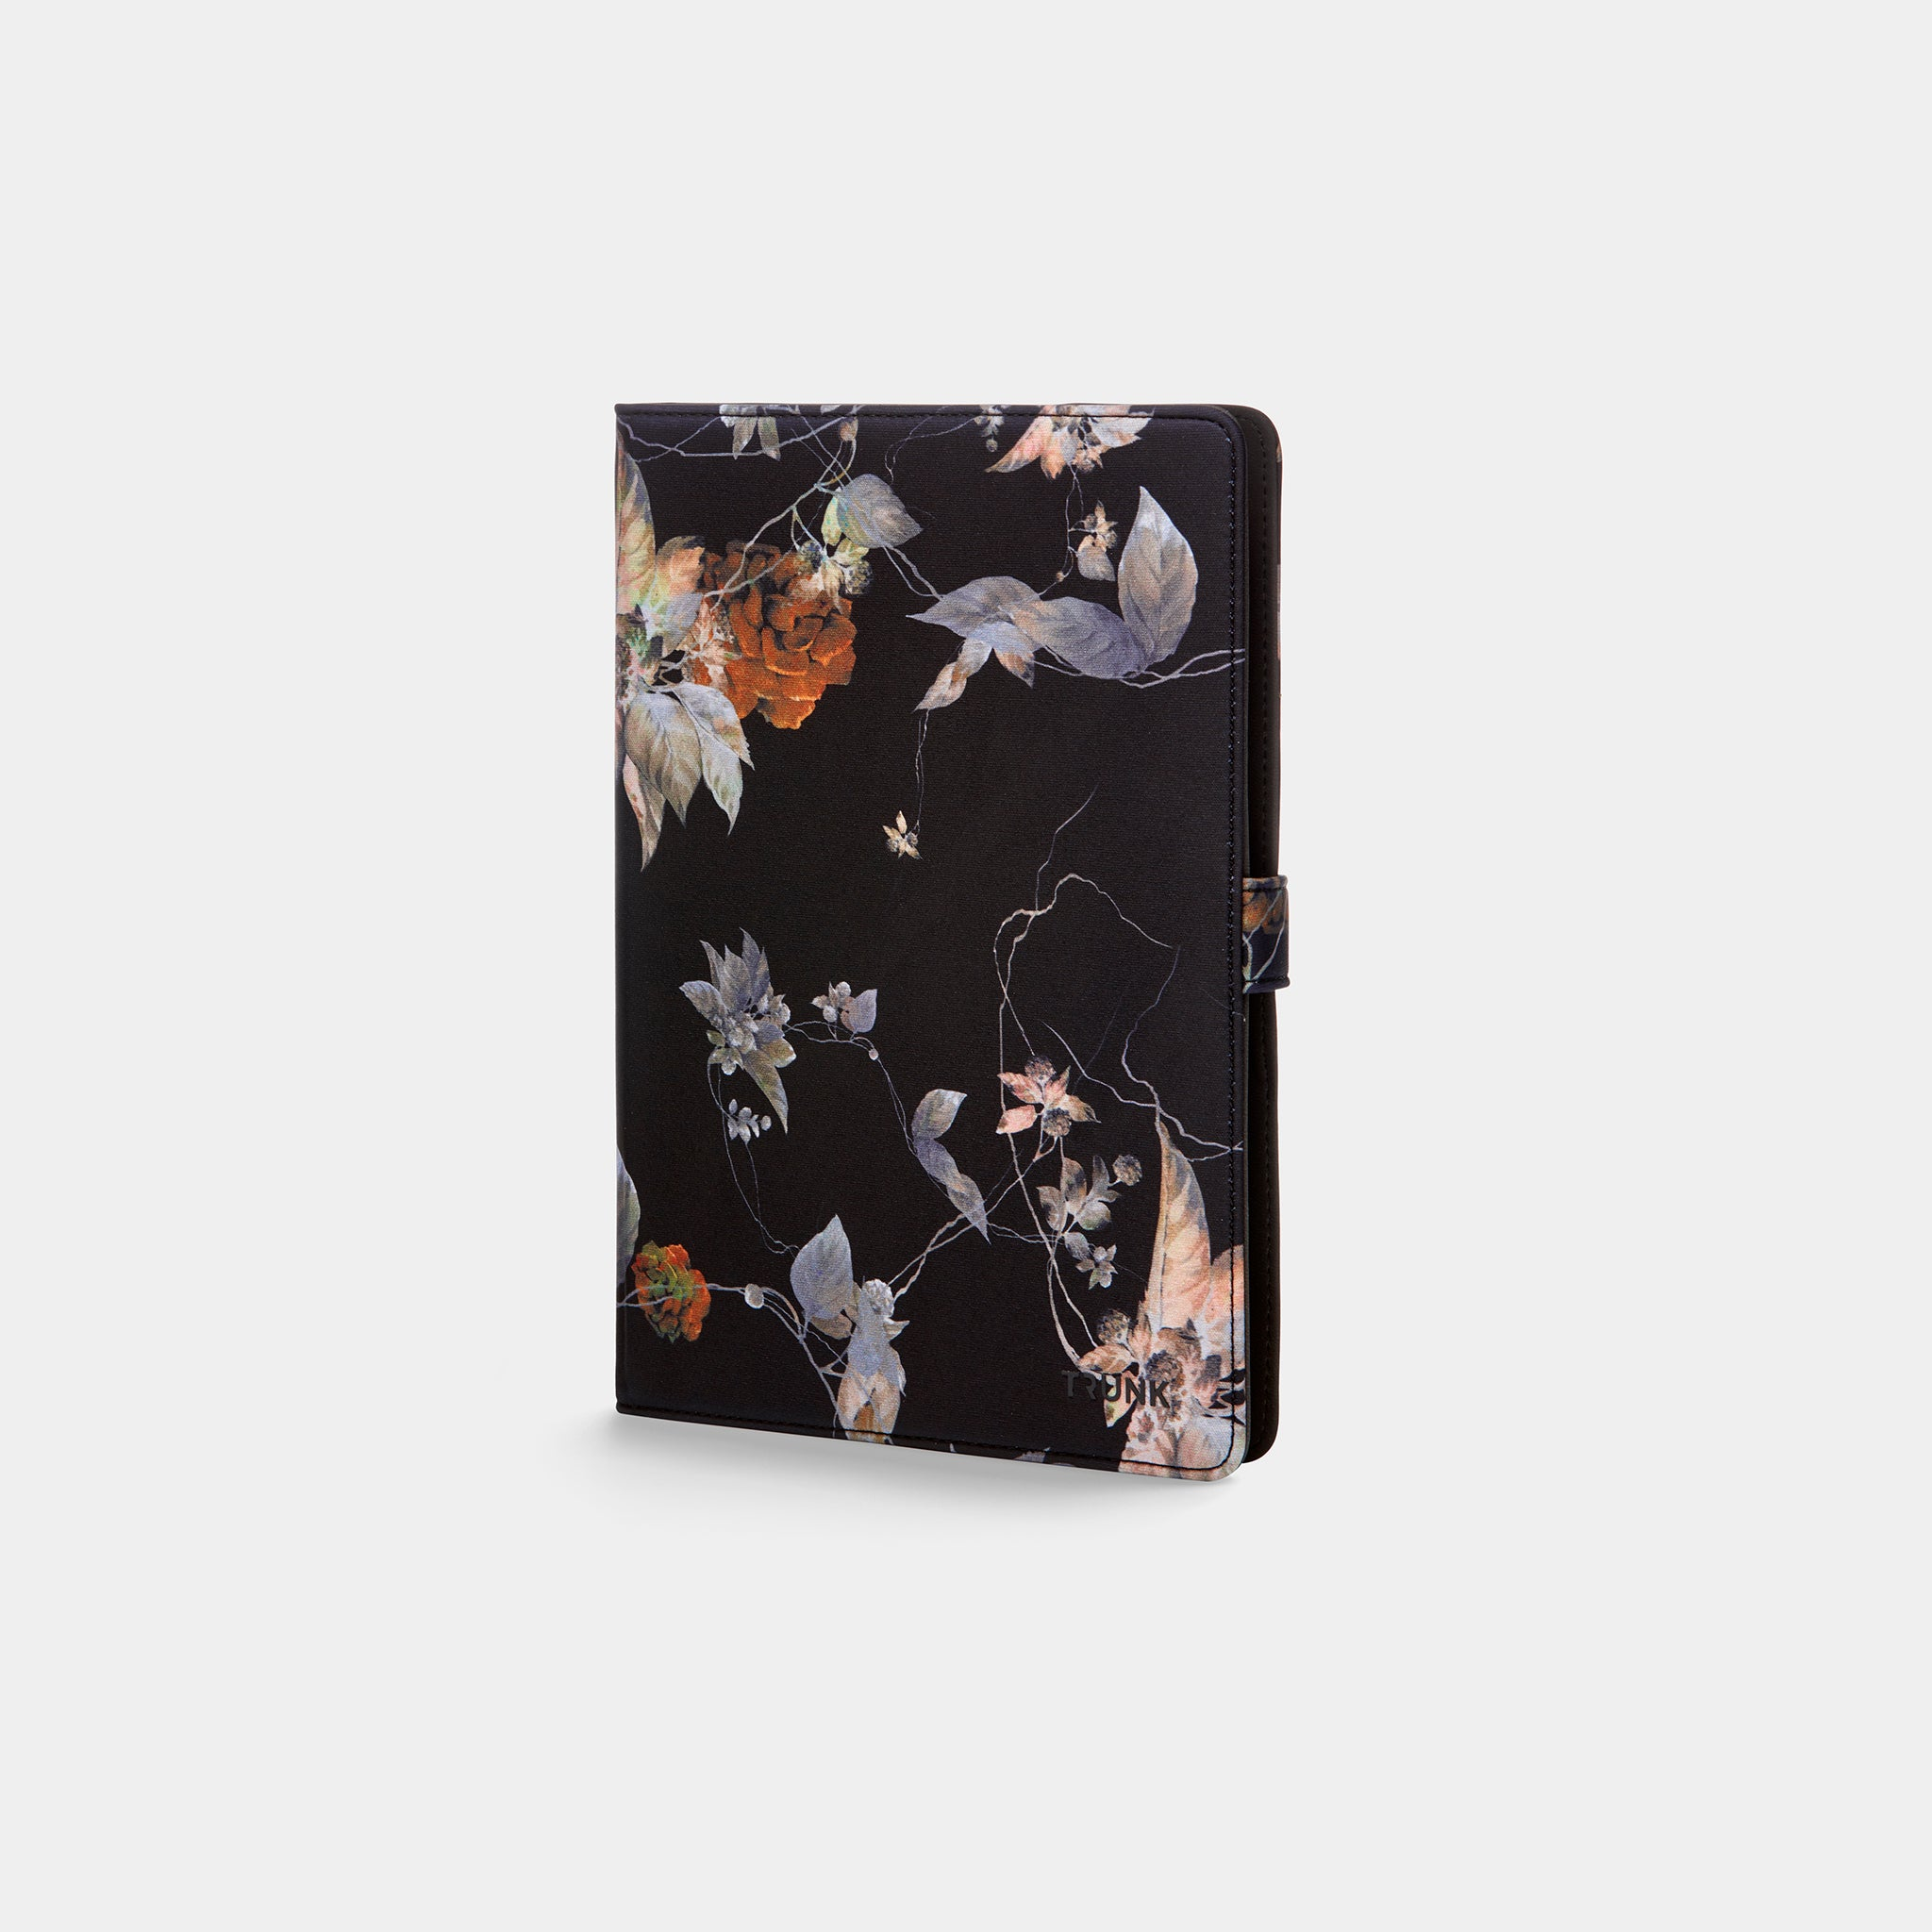 Black Flower Universal Tablet - One size - Neoprene Sleeve